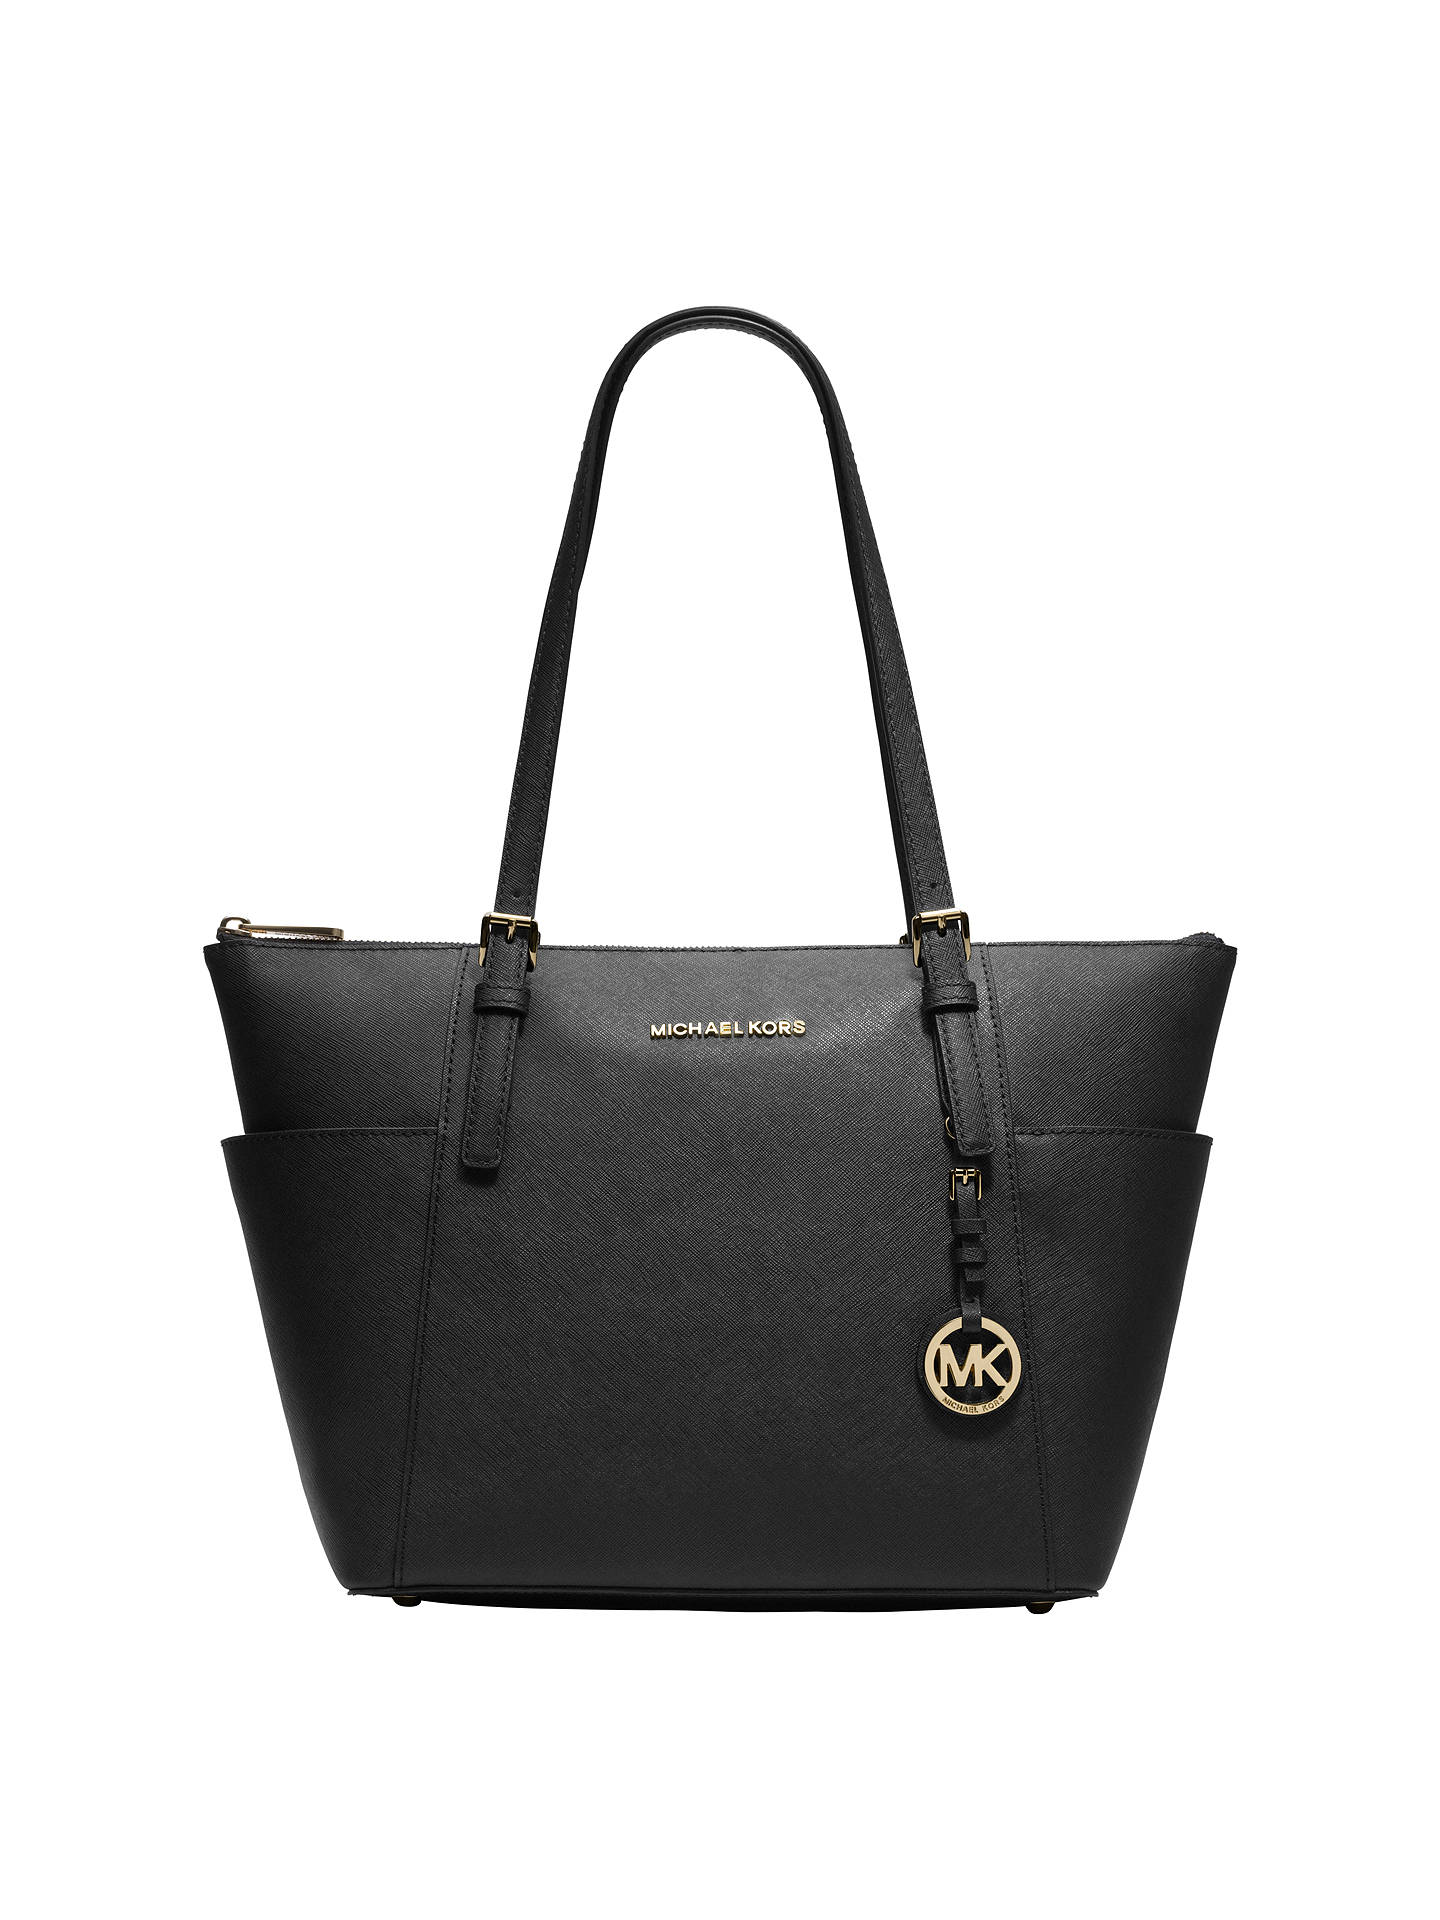 82aae6dc3826da Buy MICHAEL Michael Kors Jet Set East/West Leather Tote Bag, Black Online  at ...